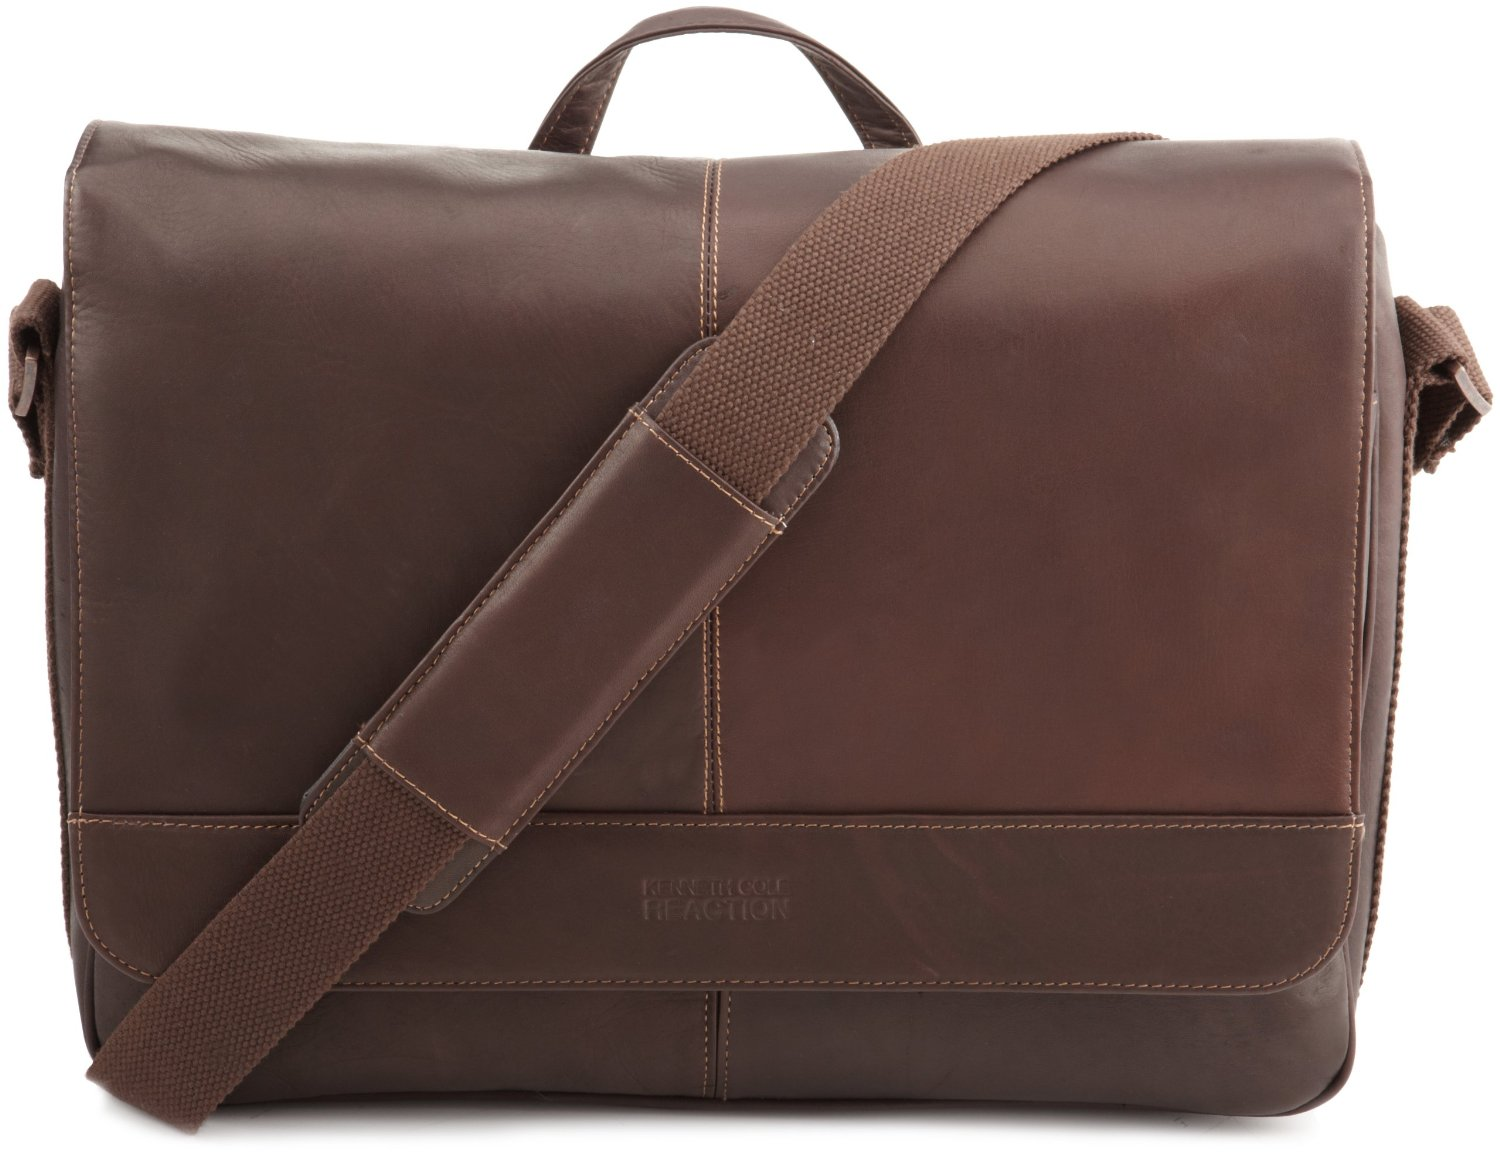 7 Types of Modern Man Bags Today